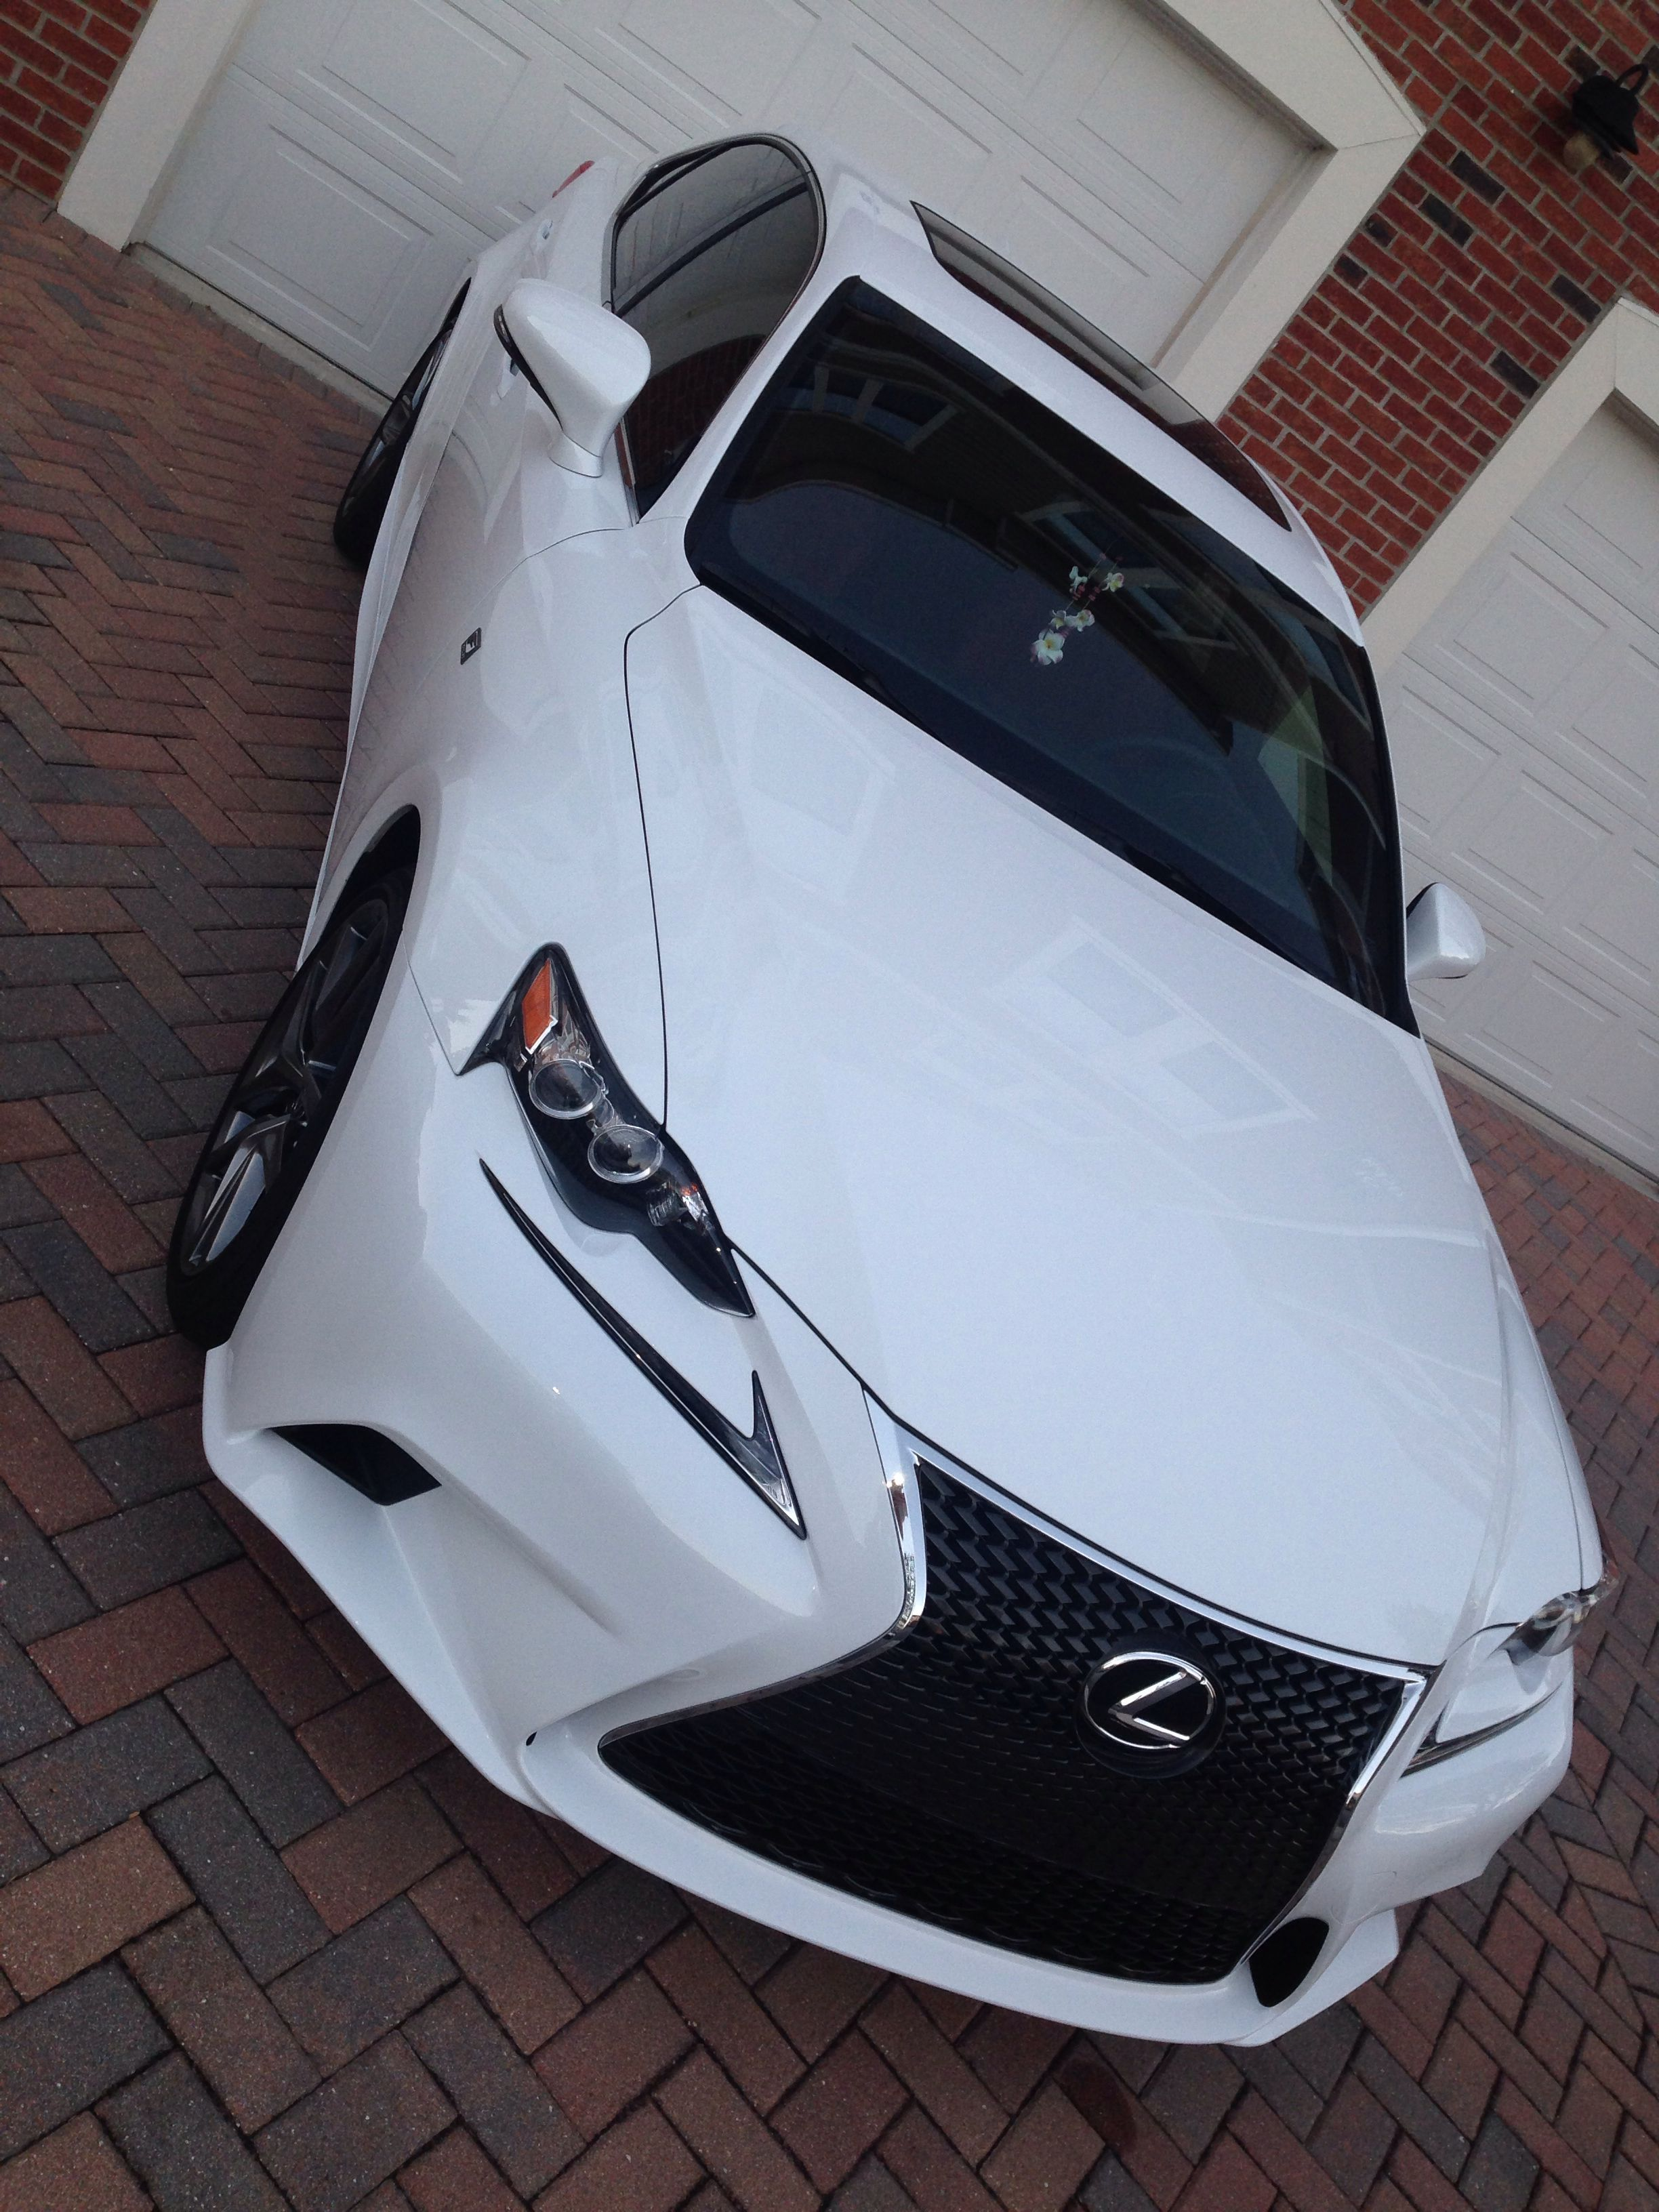 2014 Lexus Is250 Fsport Love Love Love This Needs To Be In My Driveway Asap 3 Fancy Cars Cars Lexus Cars